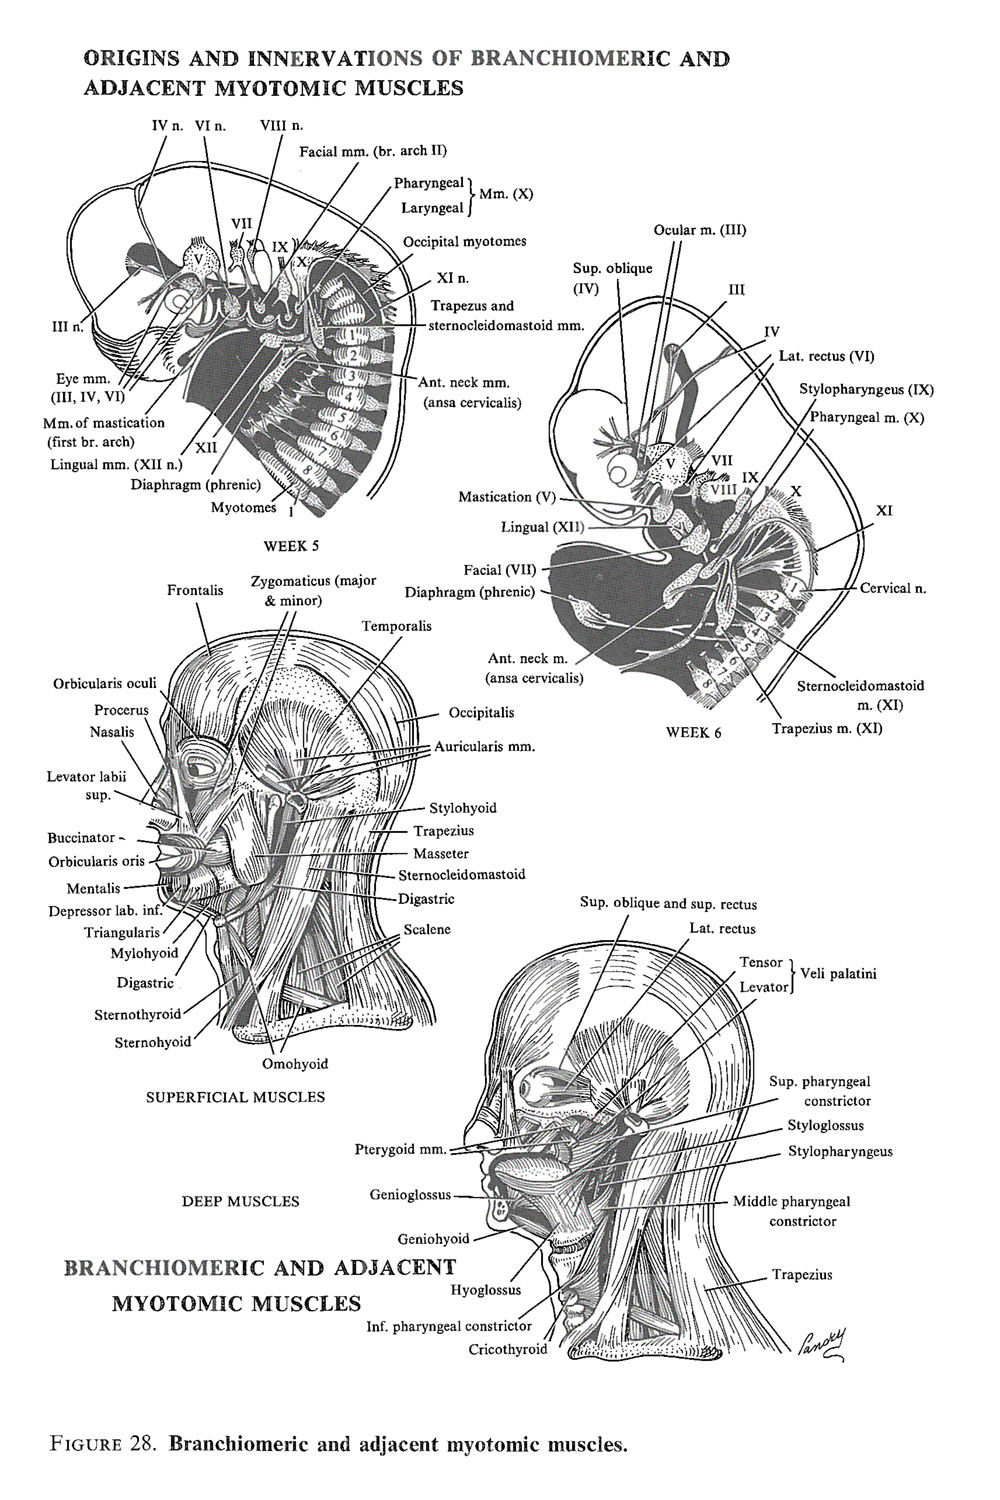 development of the muscular system: image #3